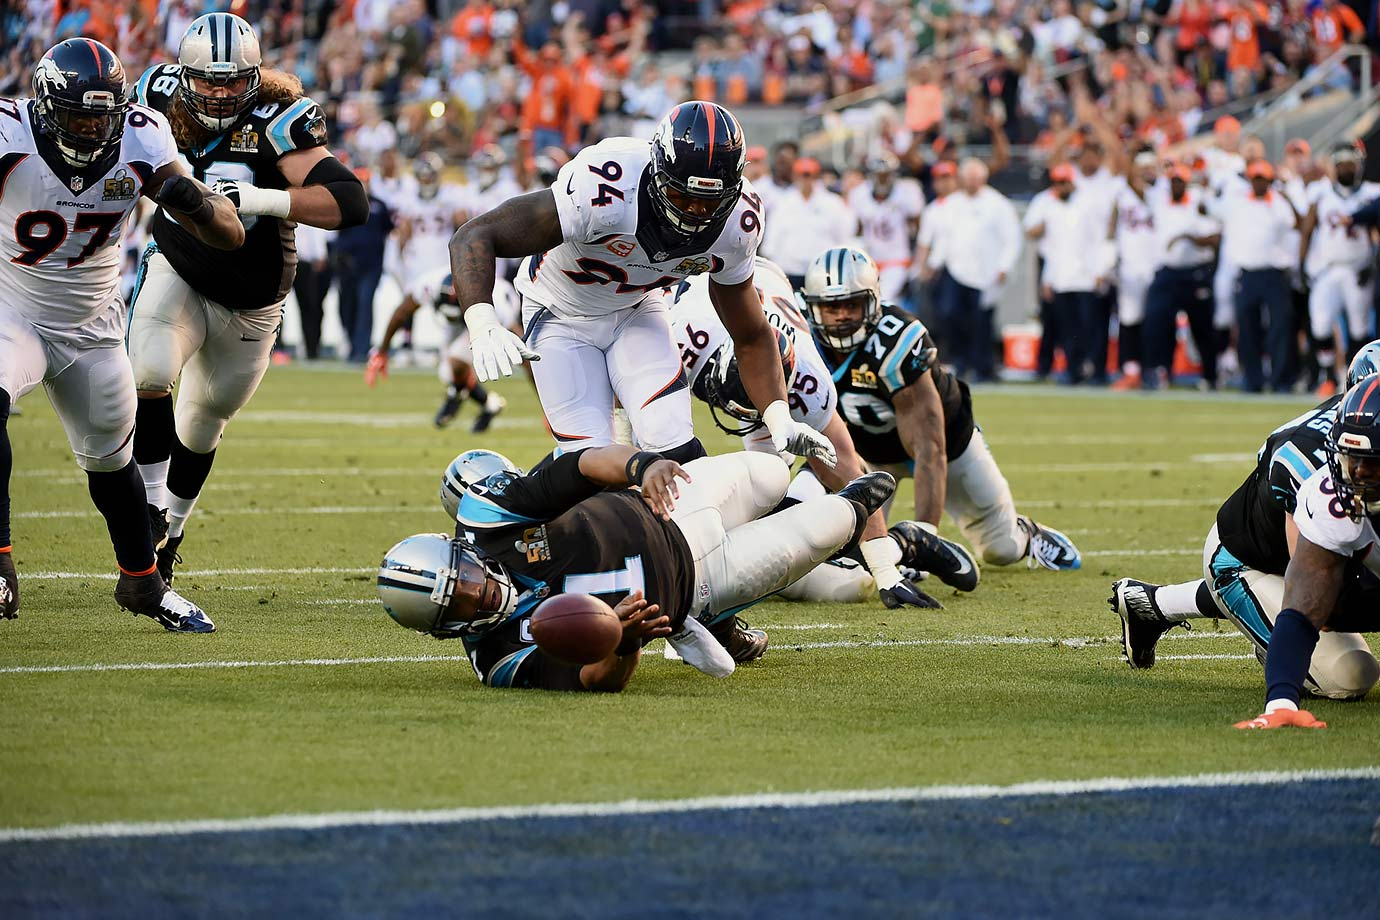 Cam Newton was stripped of the ball twice, this one leading to a touchdown by Malik Jackson early in the game.